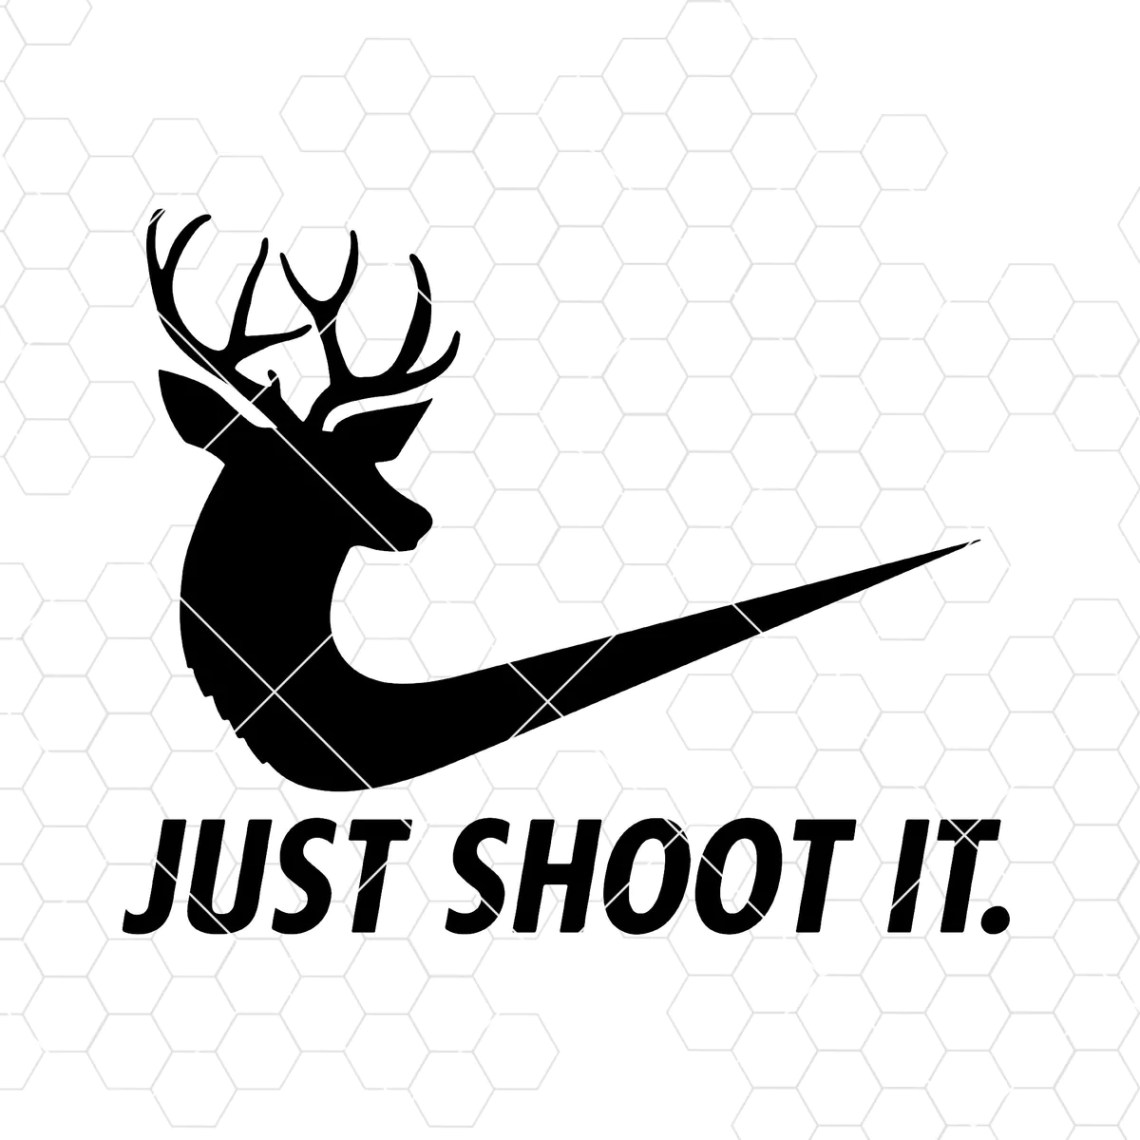 Download Just Shoot It Digital Cut Files Svg, Dxf, Eps, Png, Cricut ...